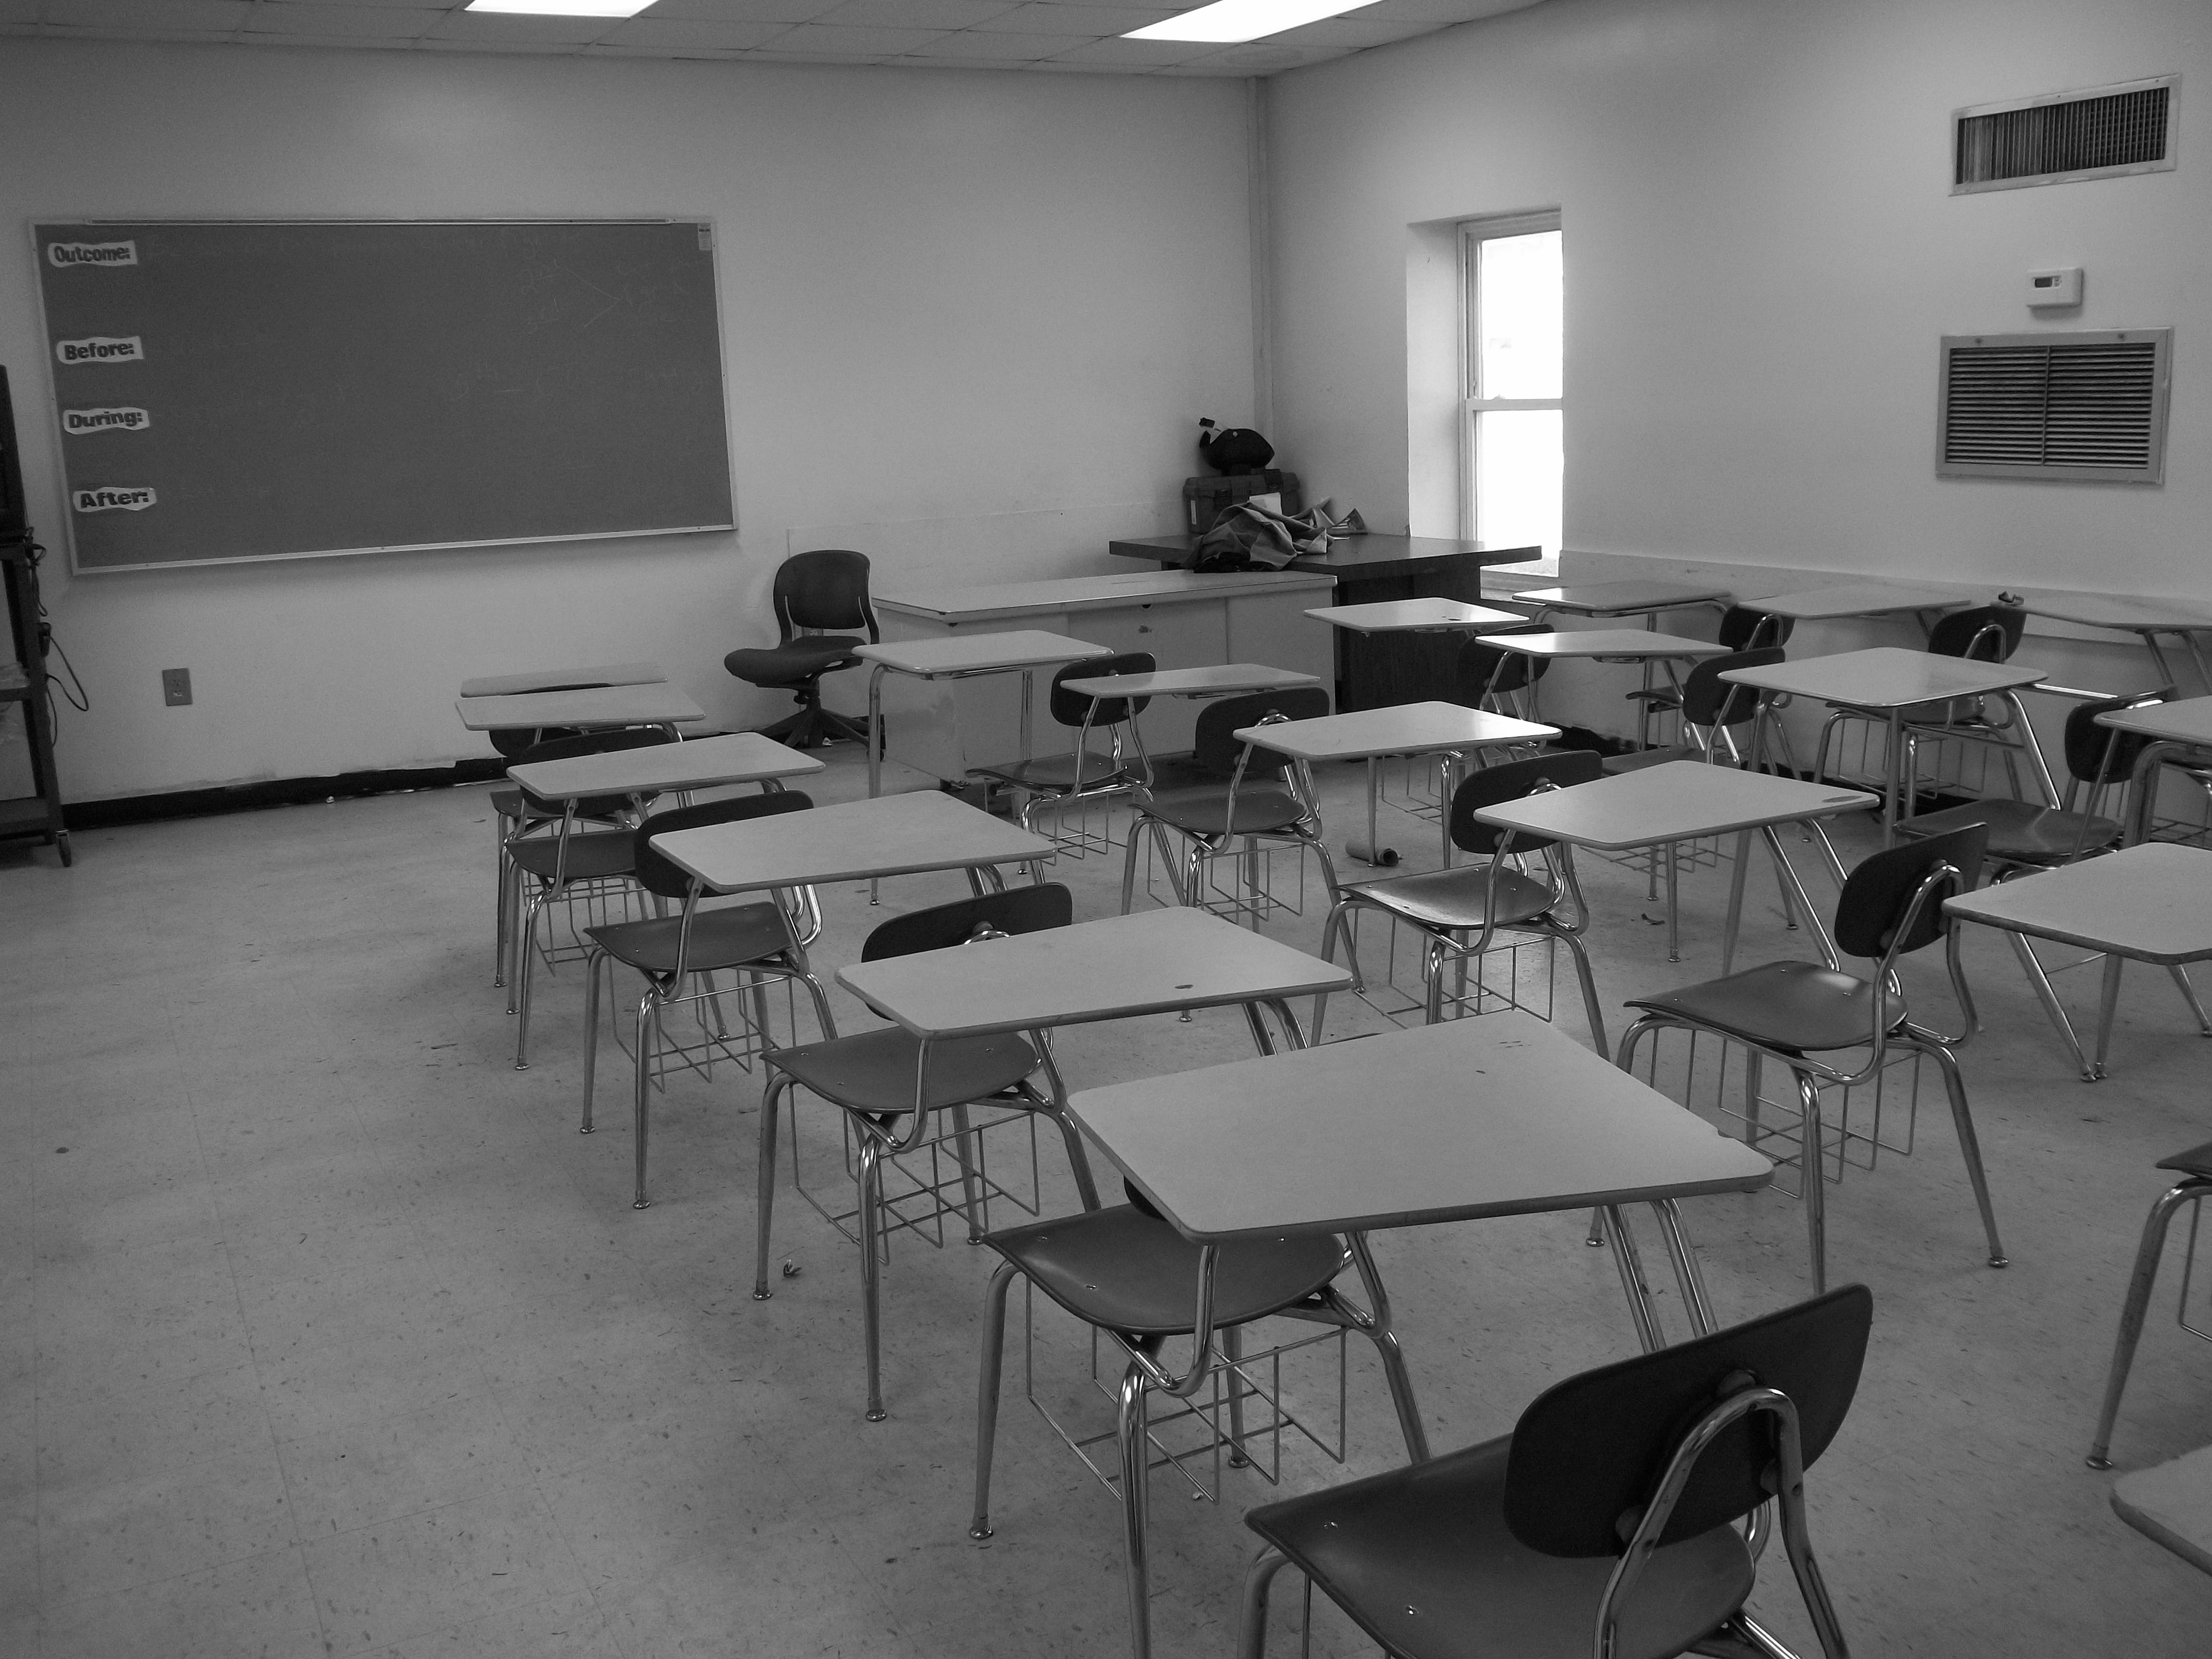 Classroom Decor Black And White ~ Classroom black and white pixshark images